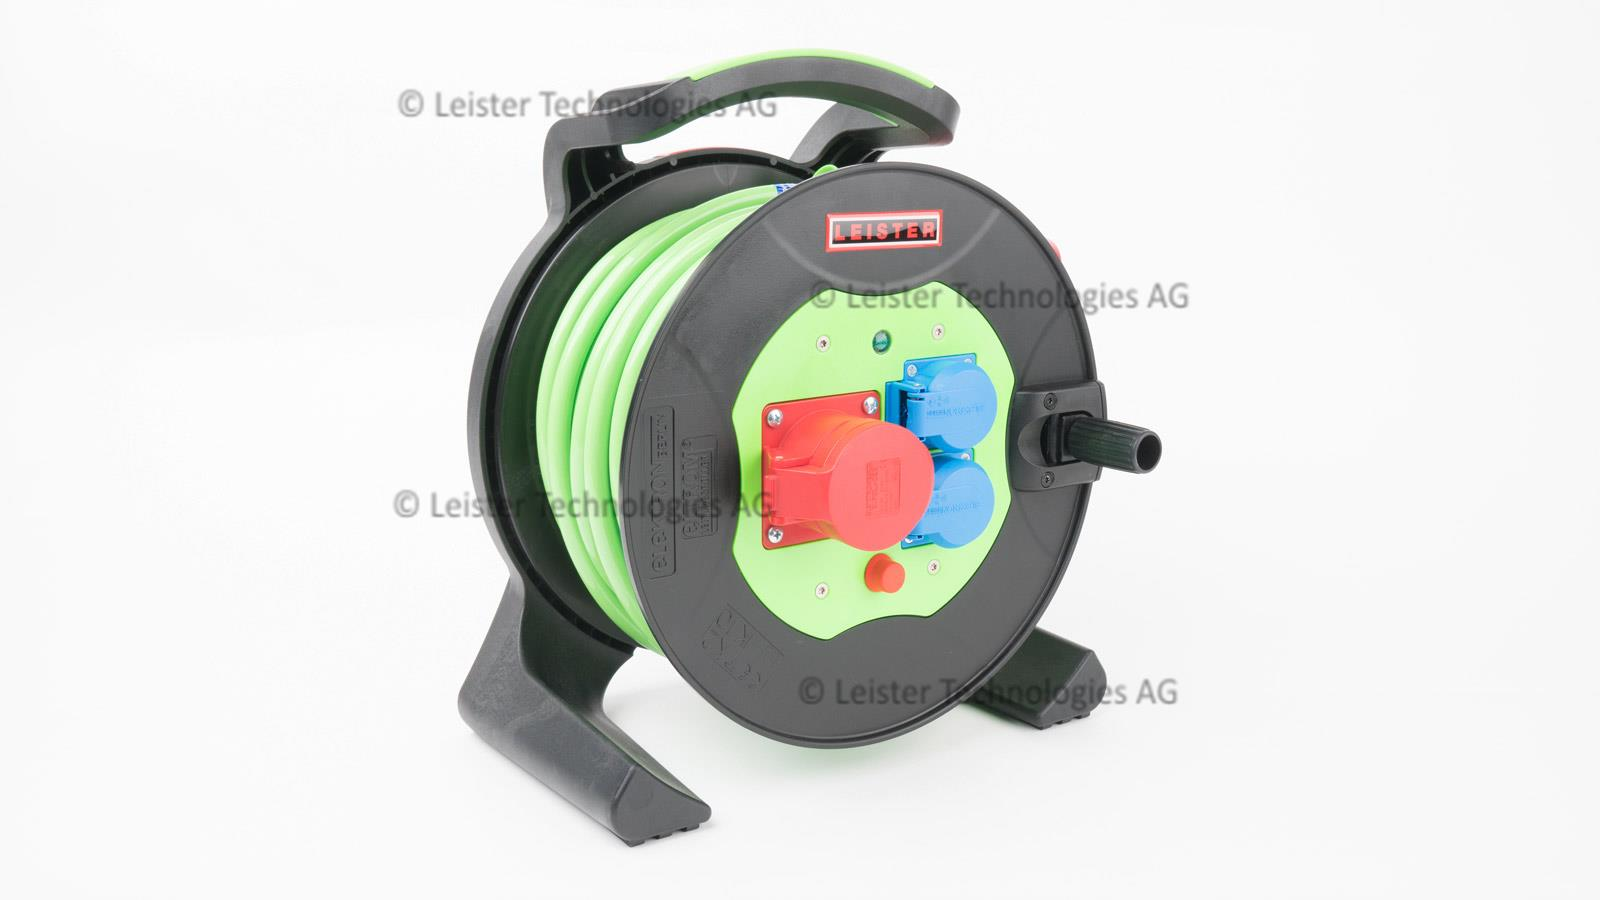 https://leister.azureedge.net/-/media/images/leister_internet/335-ltag-pw-ph-accessories/leister-accessories/allgemeines-zubehoer/161_152_cable_reel_25_1-cee_2-eu.jpg?revision=176e10c8-ec11-4e84-a859-9b81b995df67